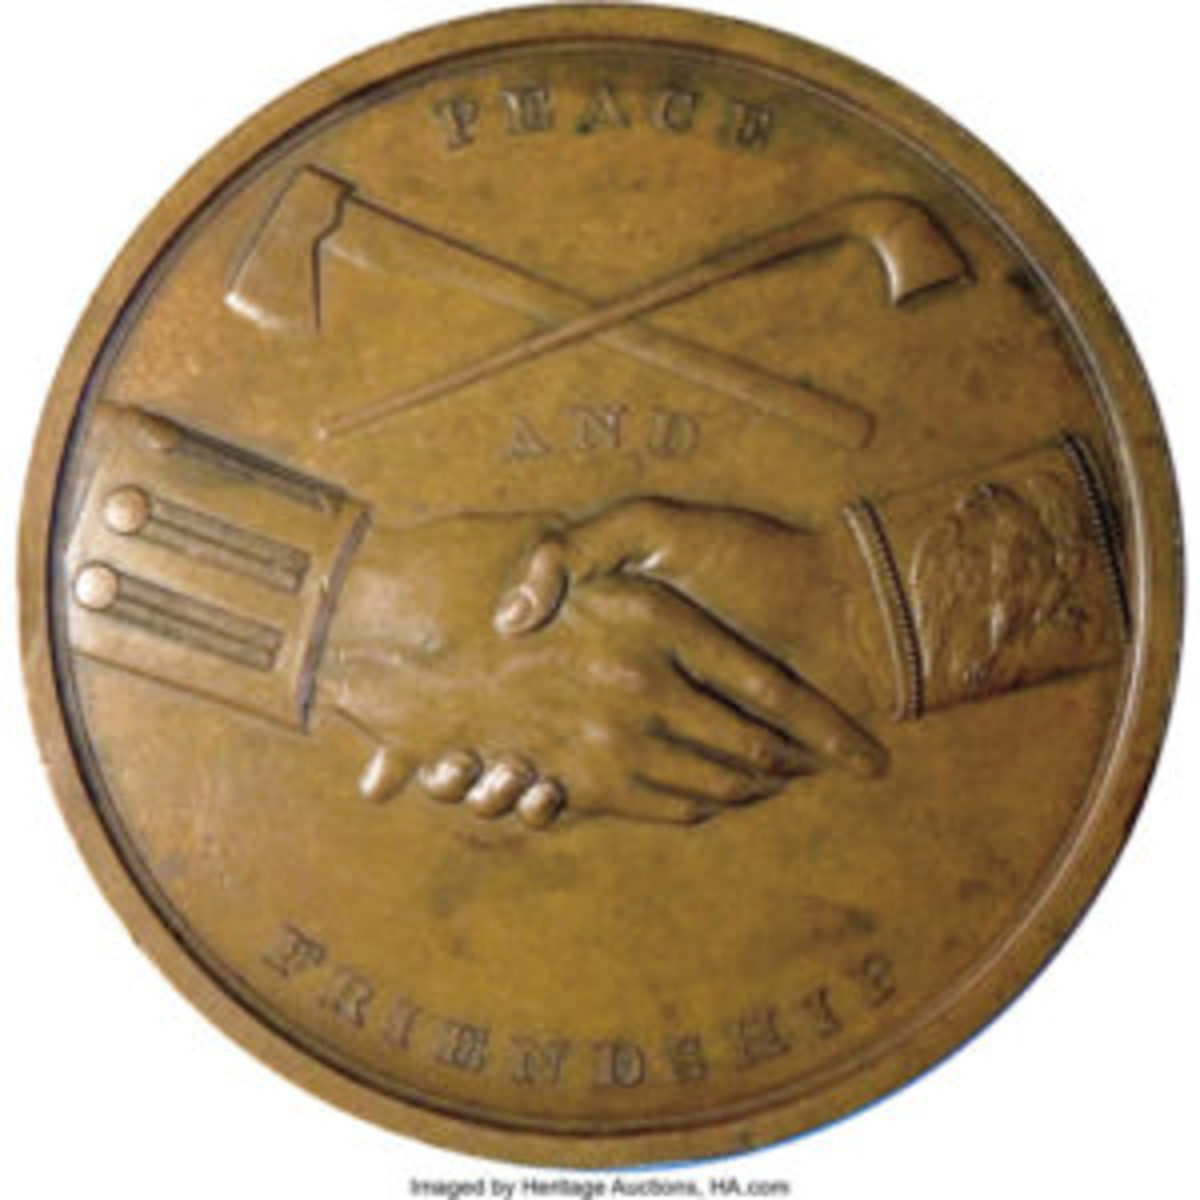 Reverse of the Jefferson medal.